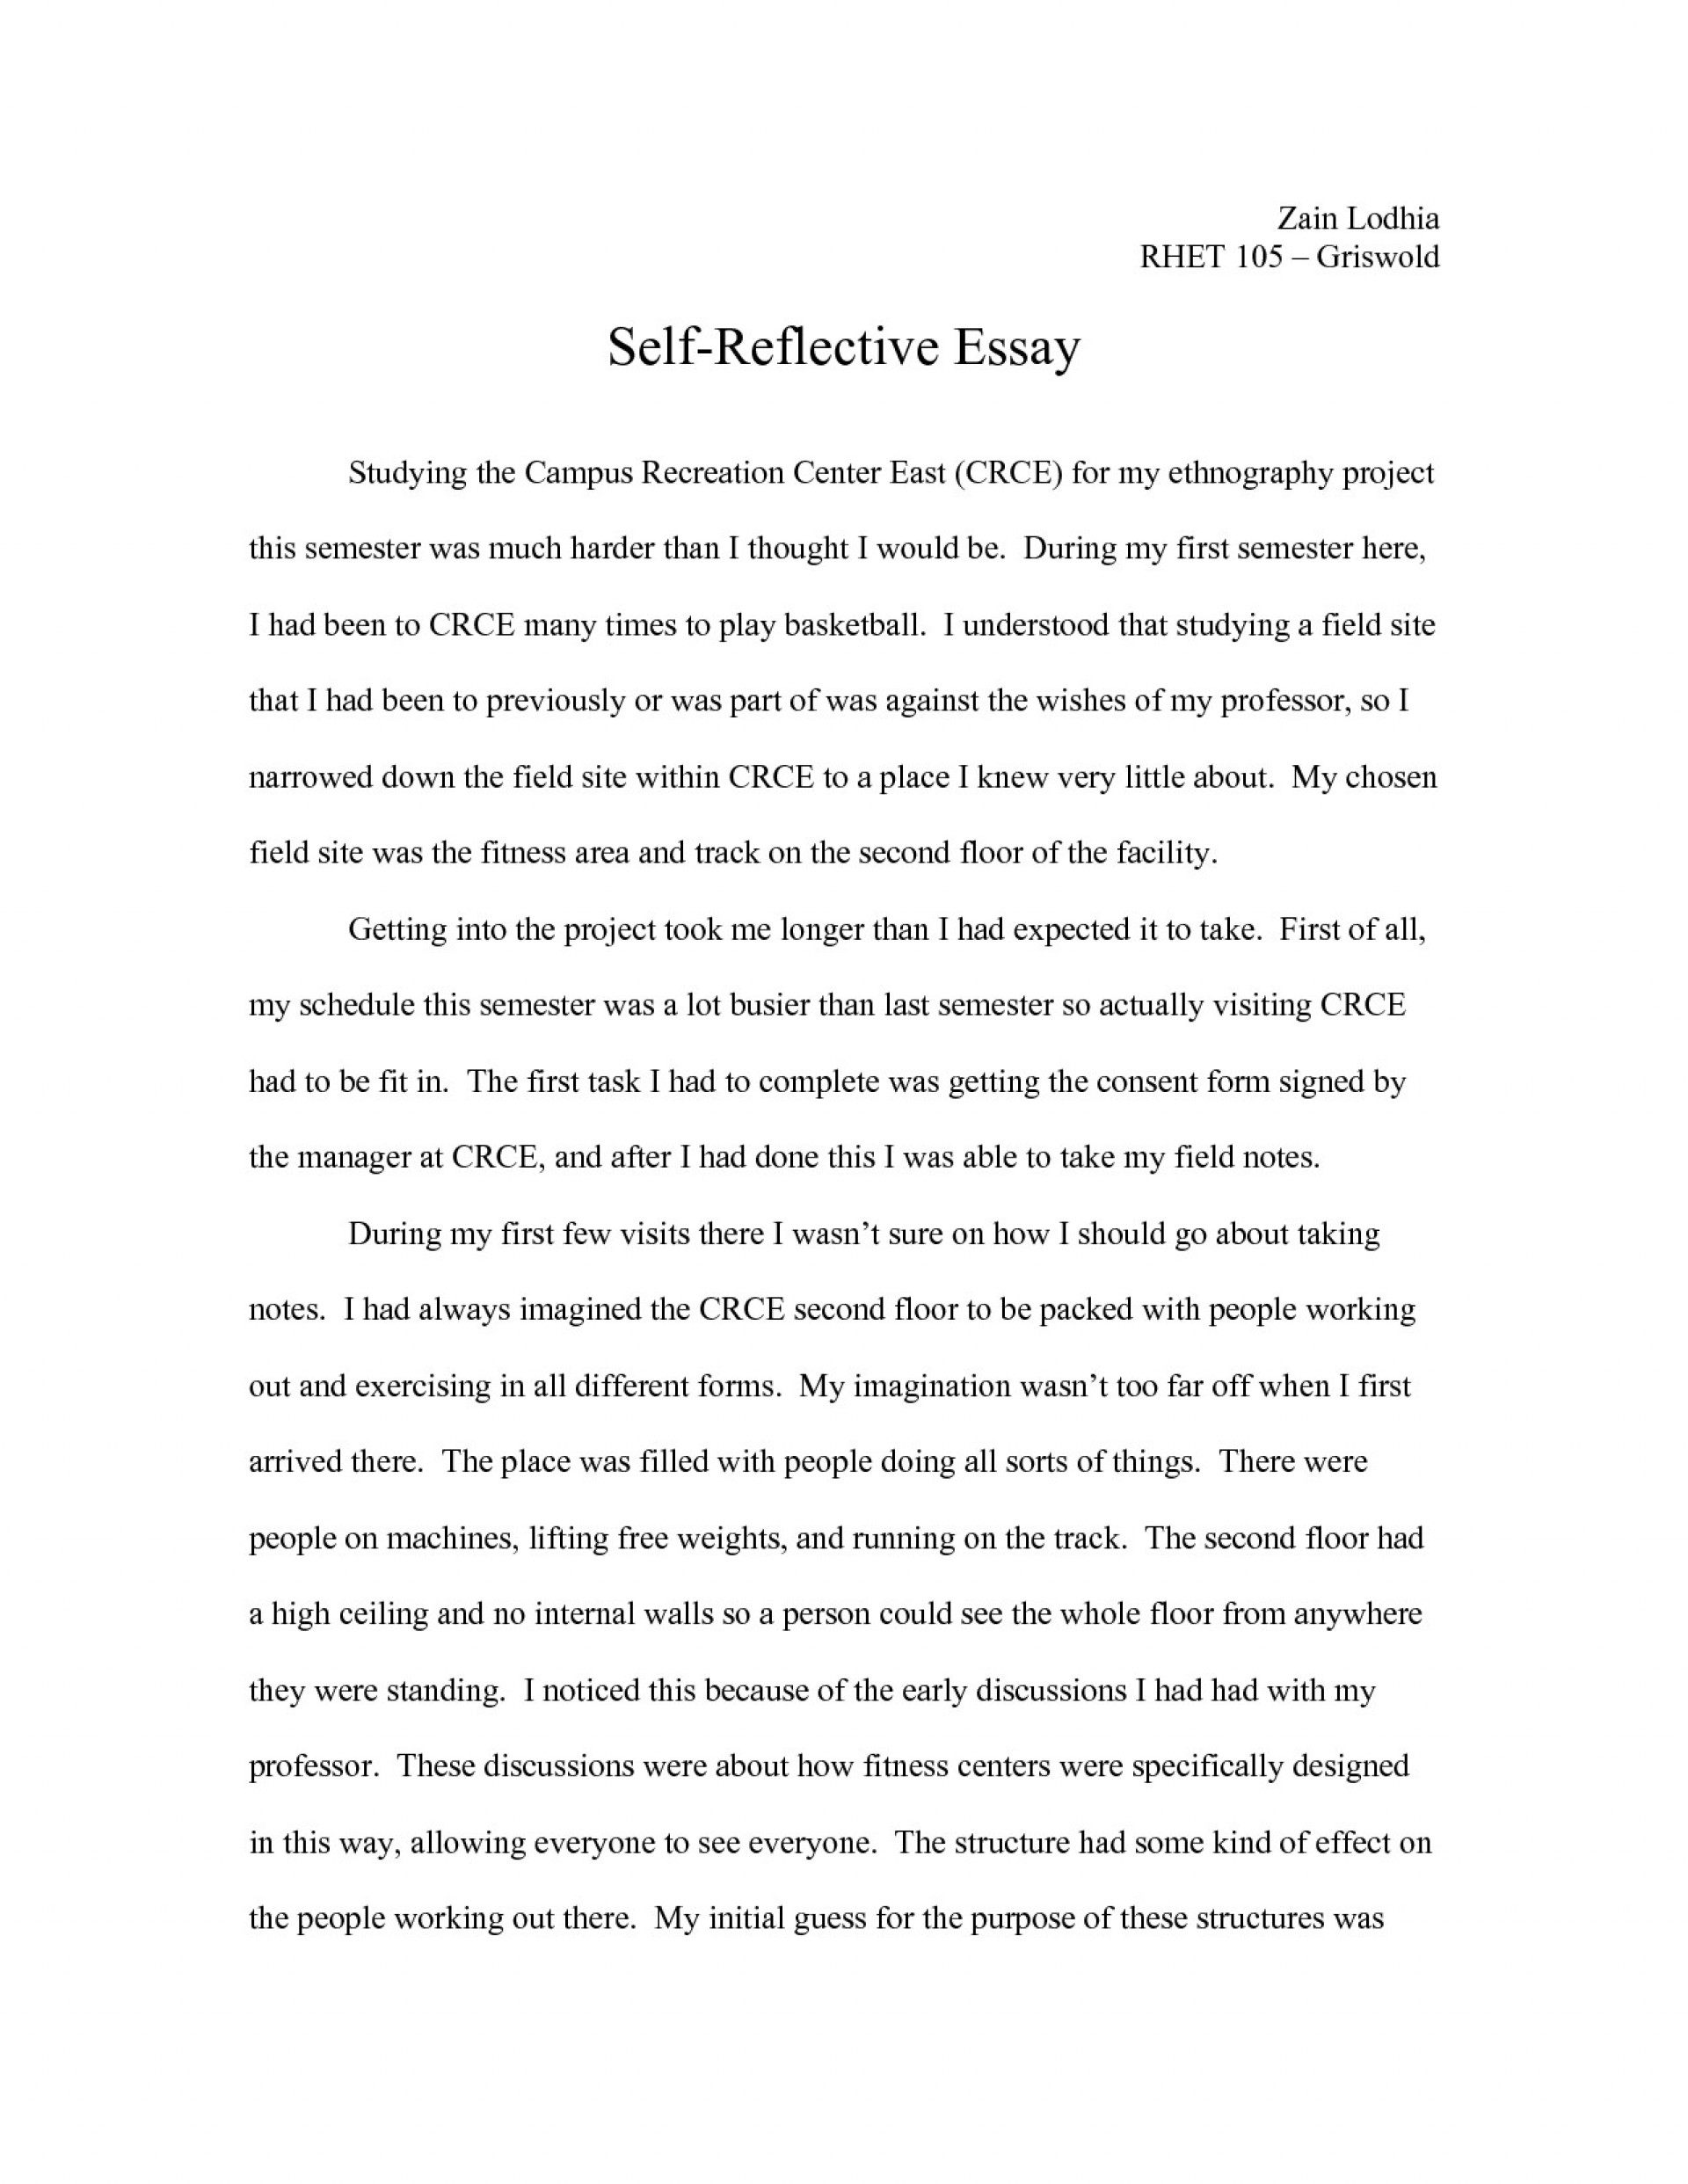 001 Essay Example Reflective Introduction Samples Of Essays How To Start Surprising A Write An 1920